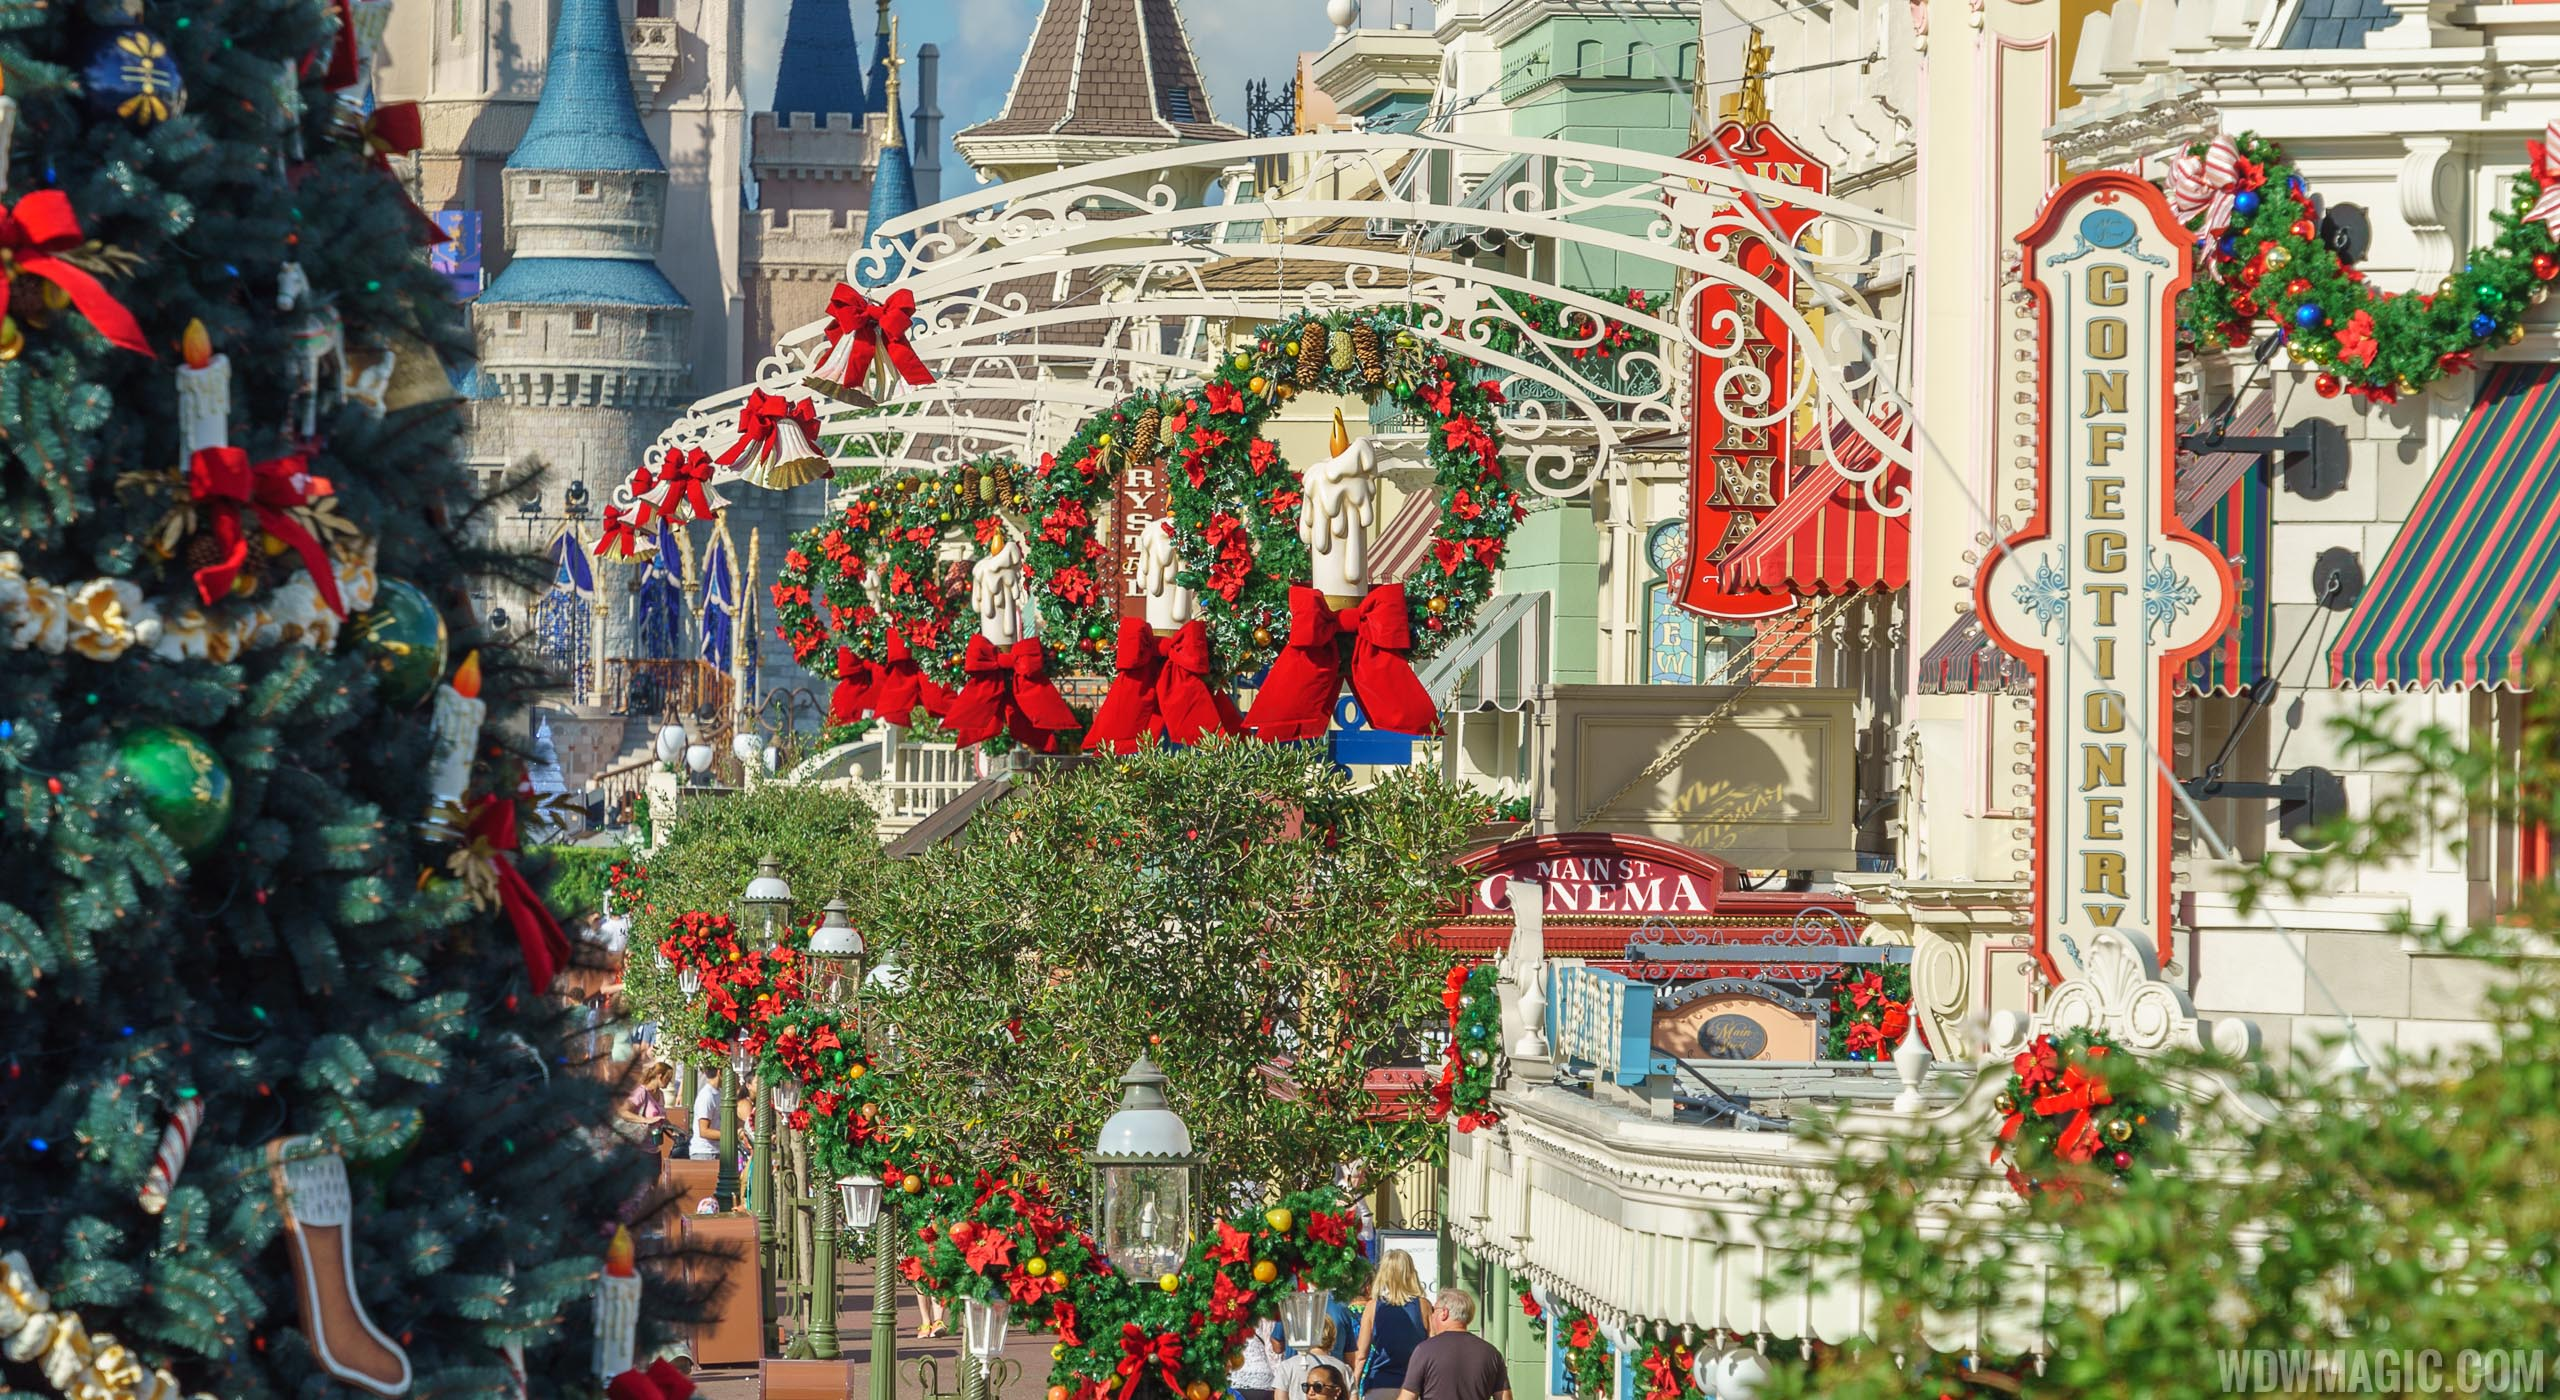 The Magic Kingdom's 2018 Christmas Holiday Decor